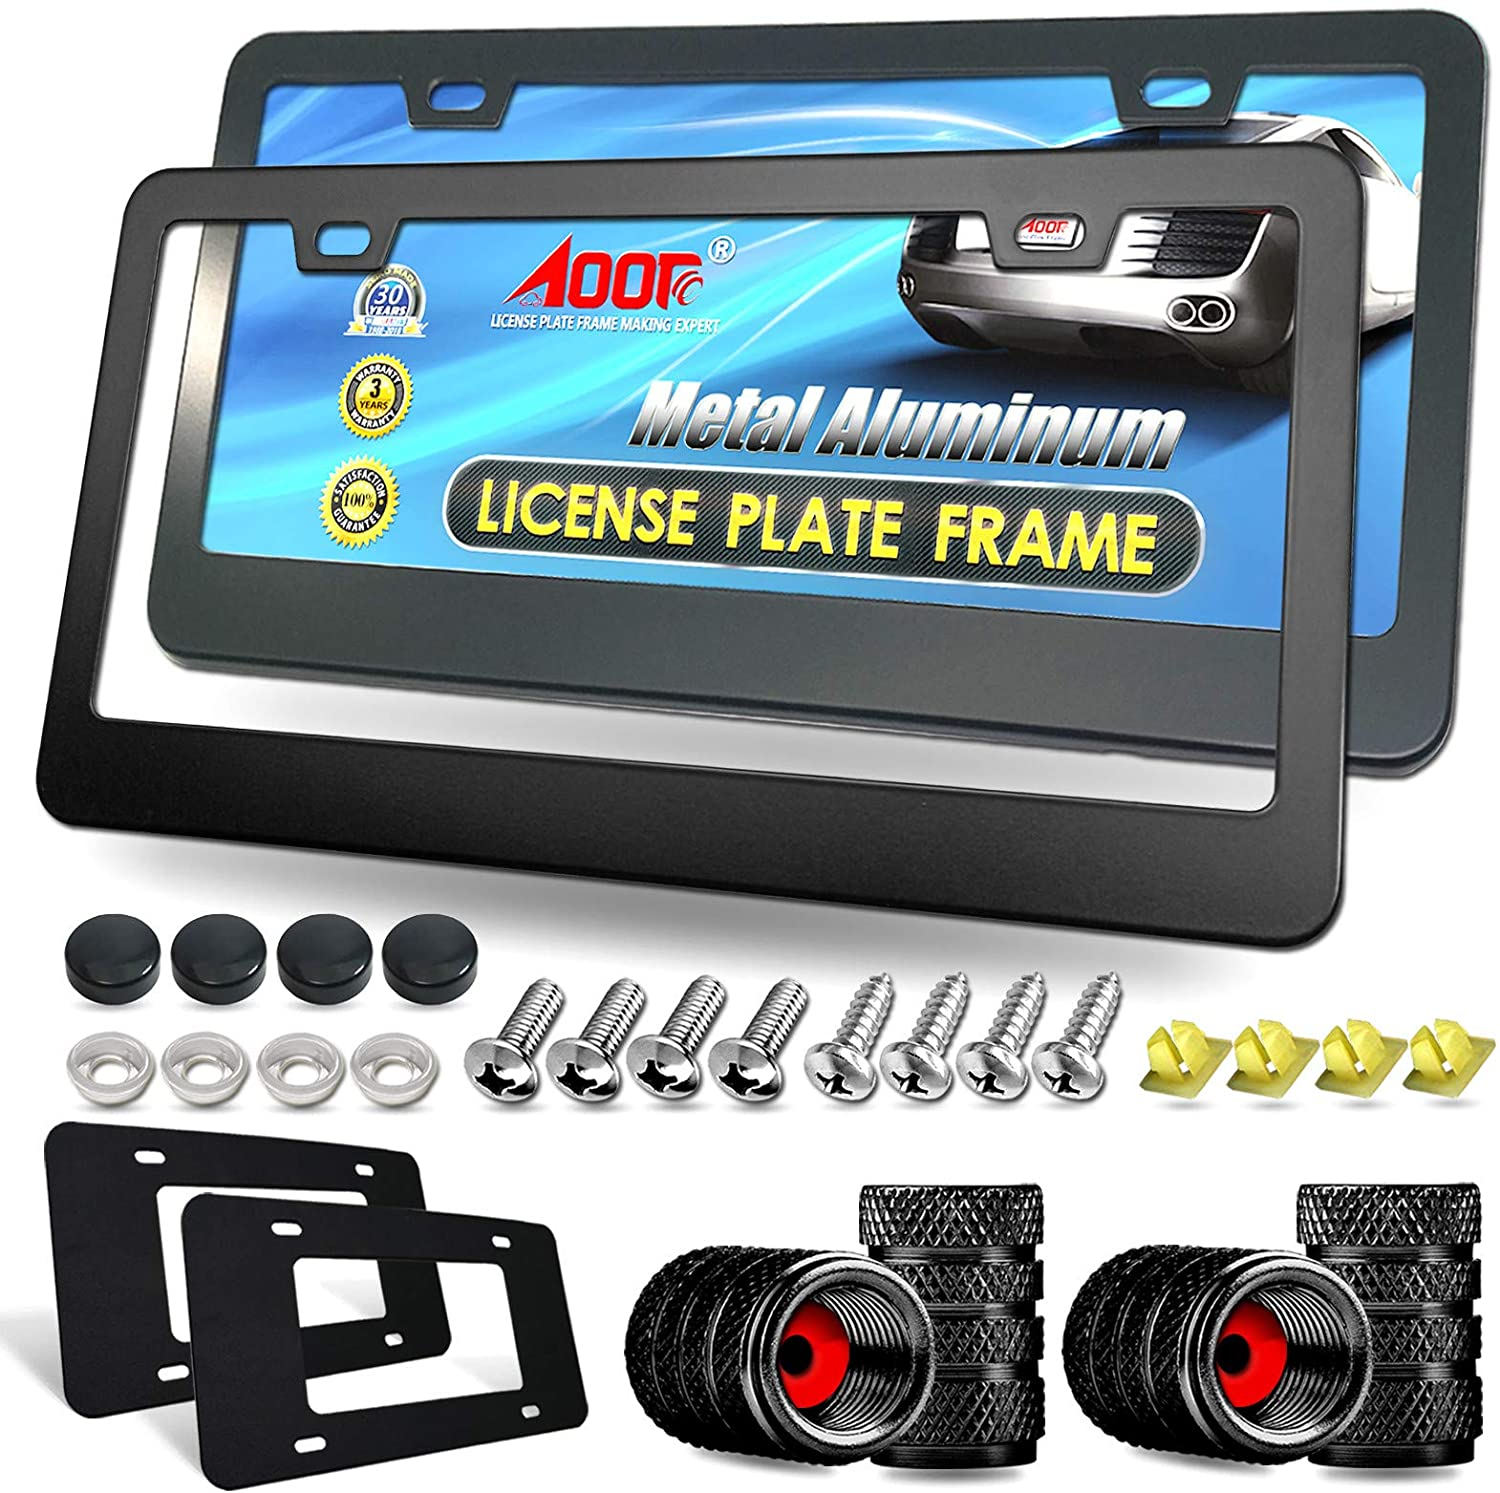 Aootf License Plate Frames- Matte Black Aluminum Car Tag Cover, 2 Pack Heavy Duty Front & Rear Holders for Women/Men, with Stainless Steel Screws Bolts, Tire Valve Caps, Rattle Proof Pads, 2 Hole